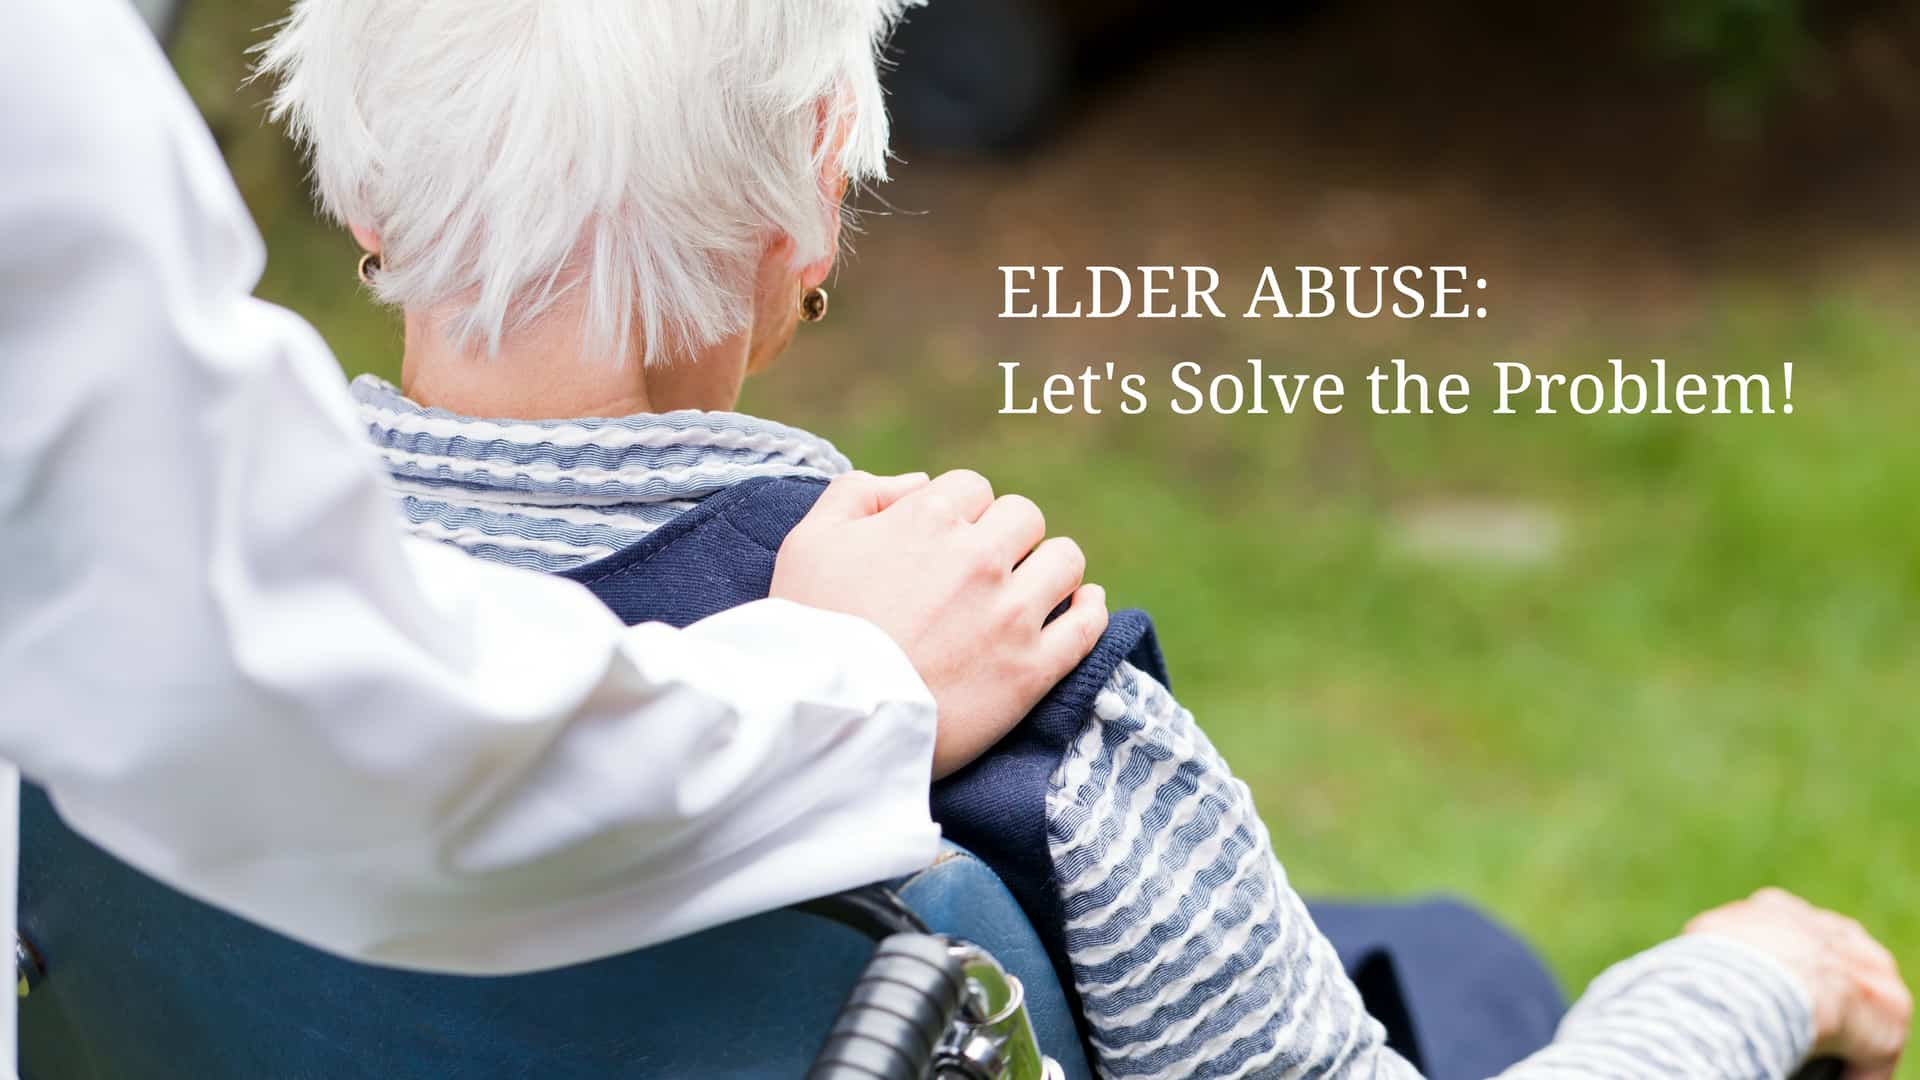 Elder Law Gary W. Crews elder abuse: let's solve the problem! - elder abuse - Elder Abuse: Let's Solve the Problem!